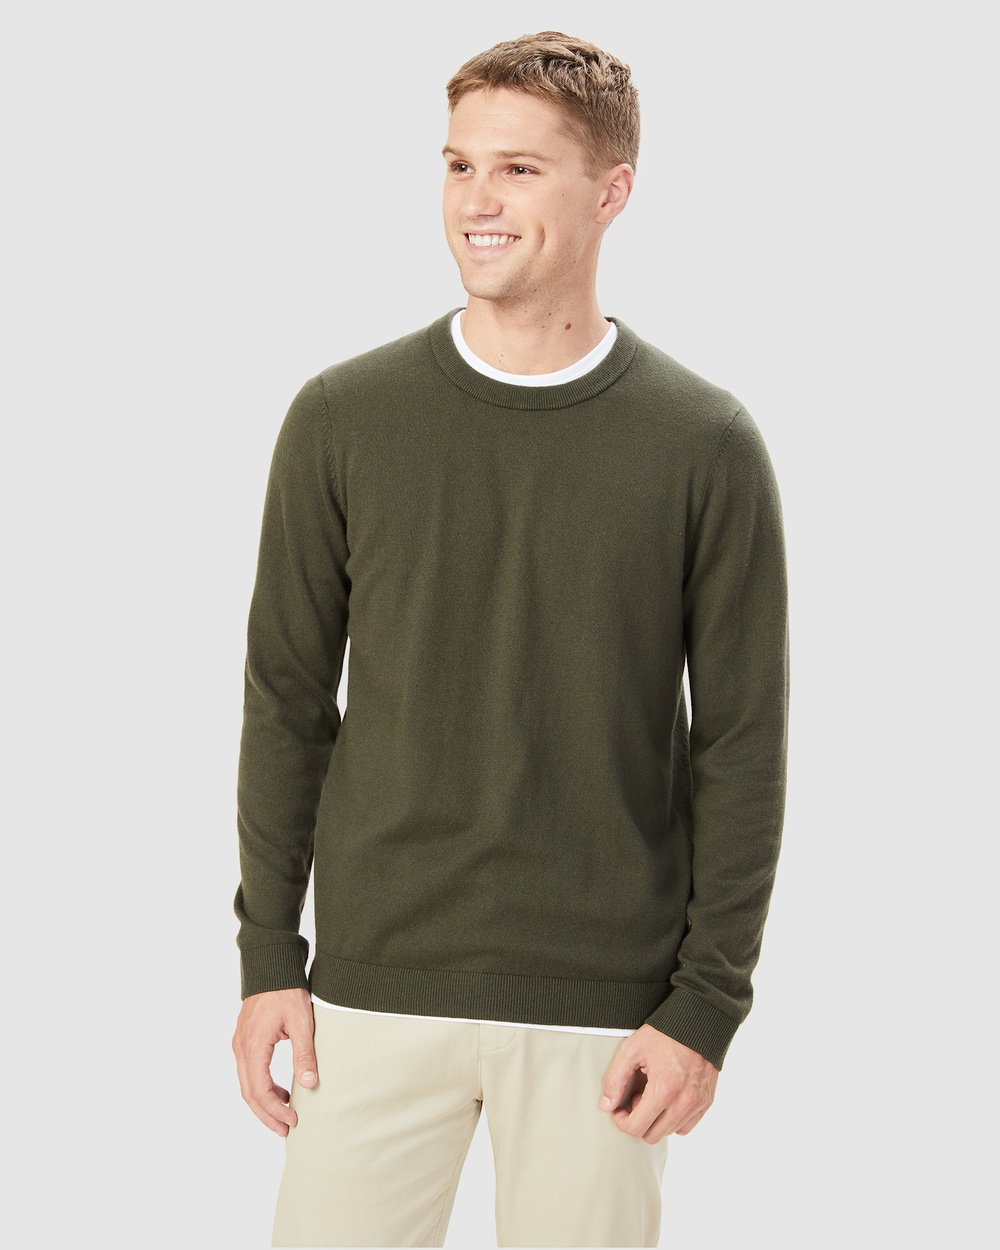 French Connection Merino Blend Knit Jumpers & Cardigans MOSS